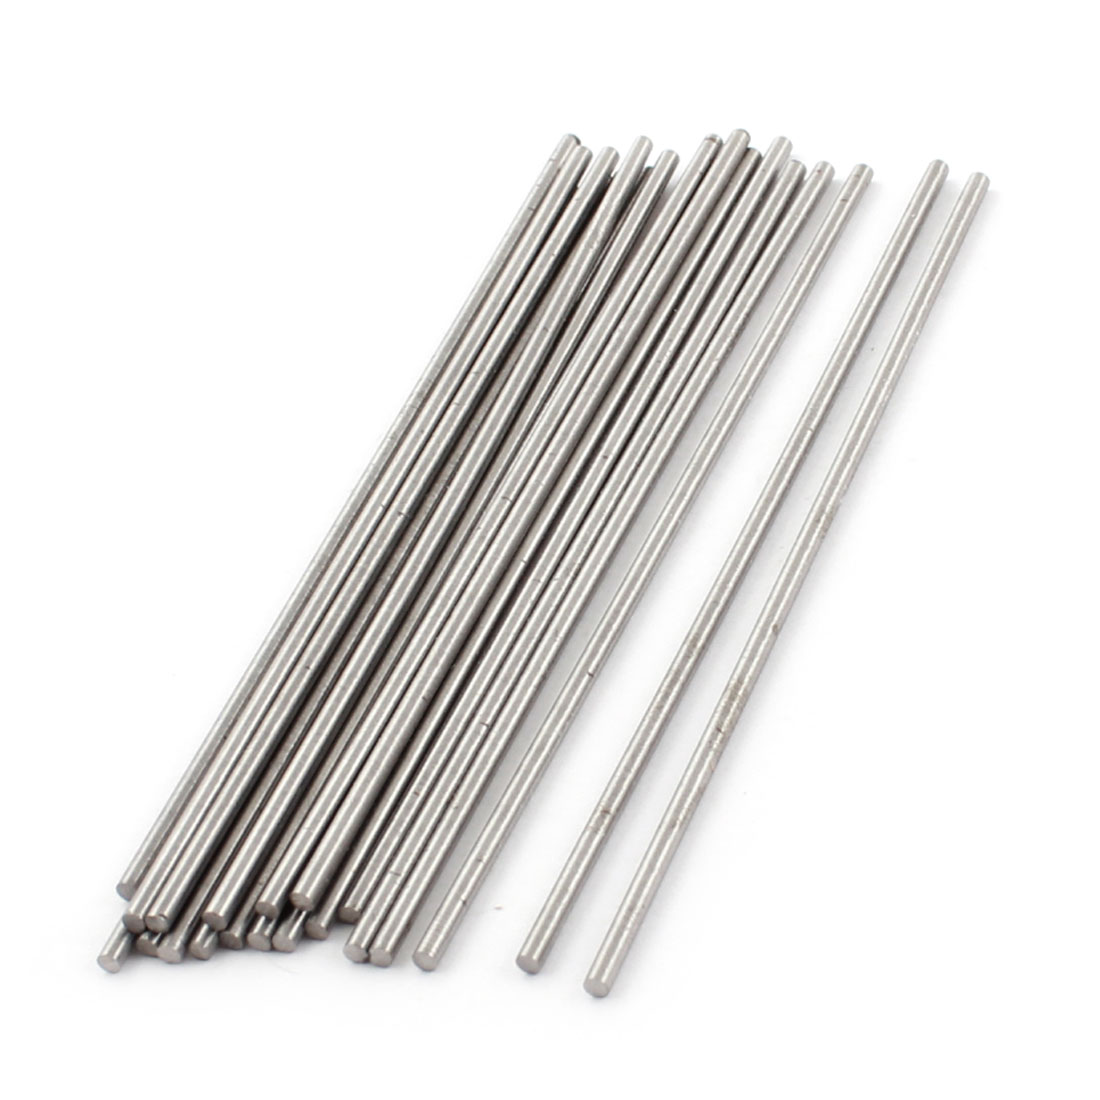 2mm x 100mm Silver Tone HSS Straight Machine Turning Tool Round Lathe Rod Bar 20Pcs